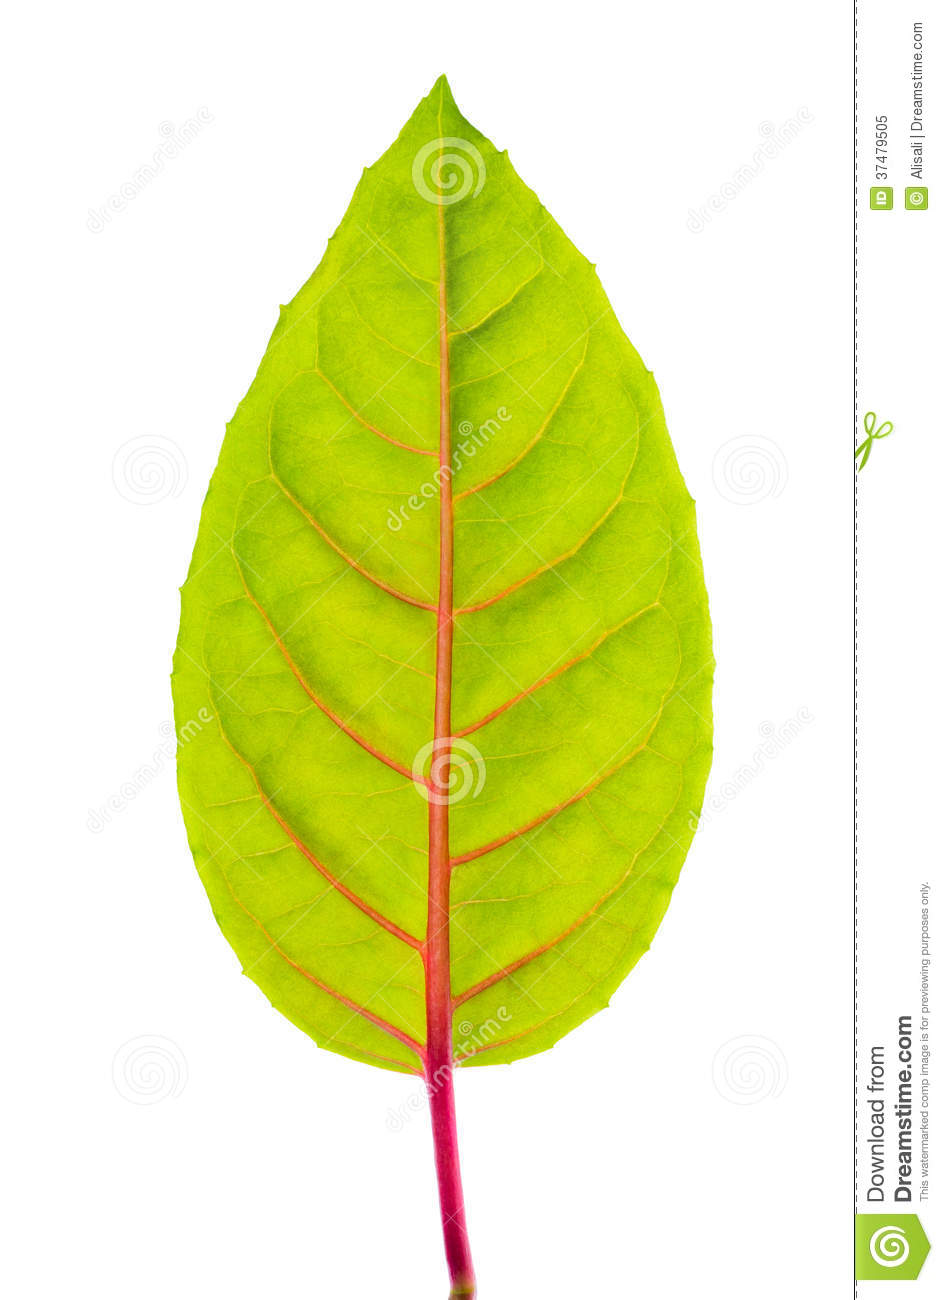 green leaf with red veins royalty free stock photo image BBQ Picnic Clip Art tropical foliage clipart